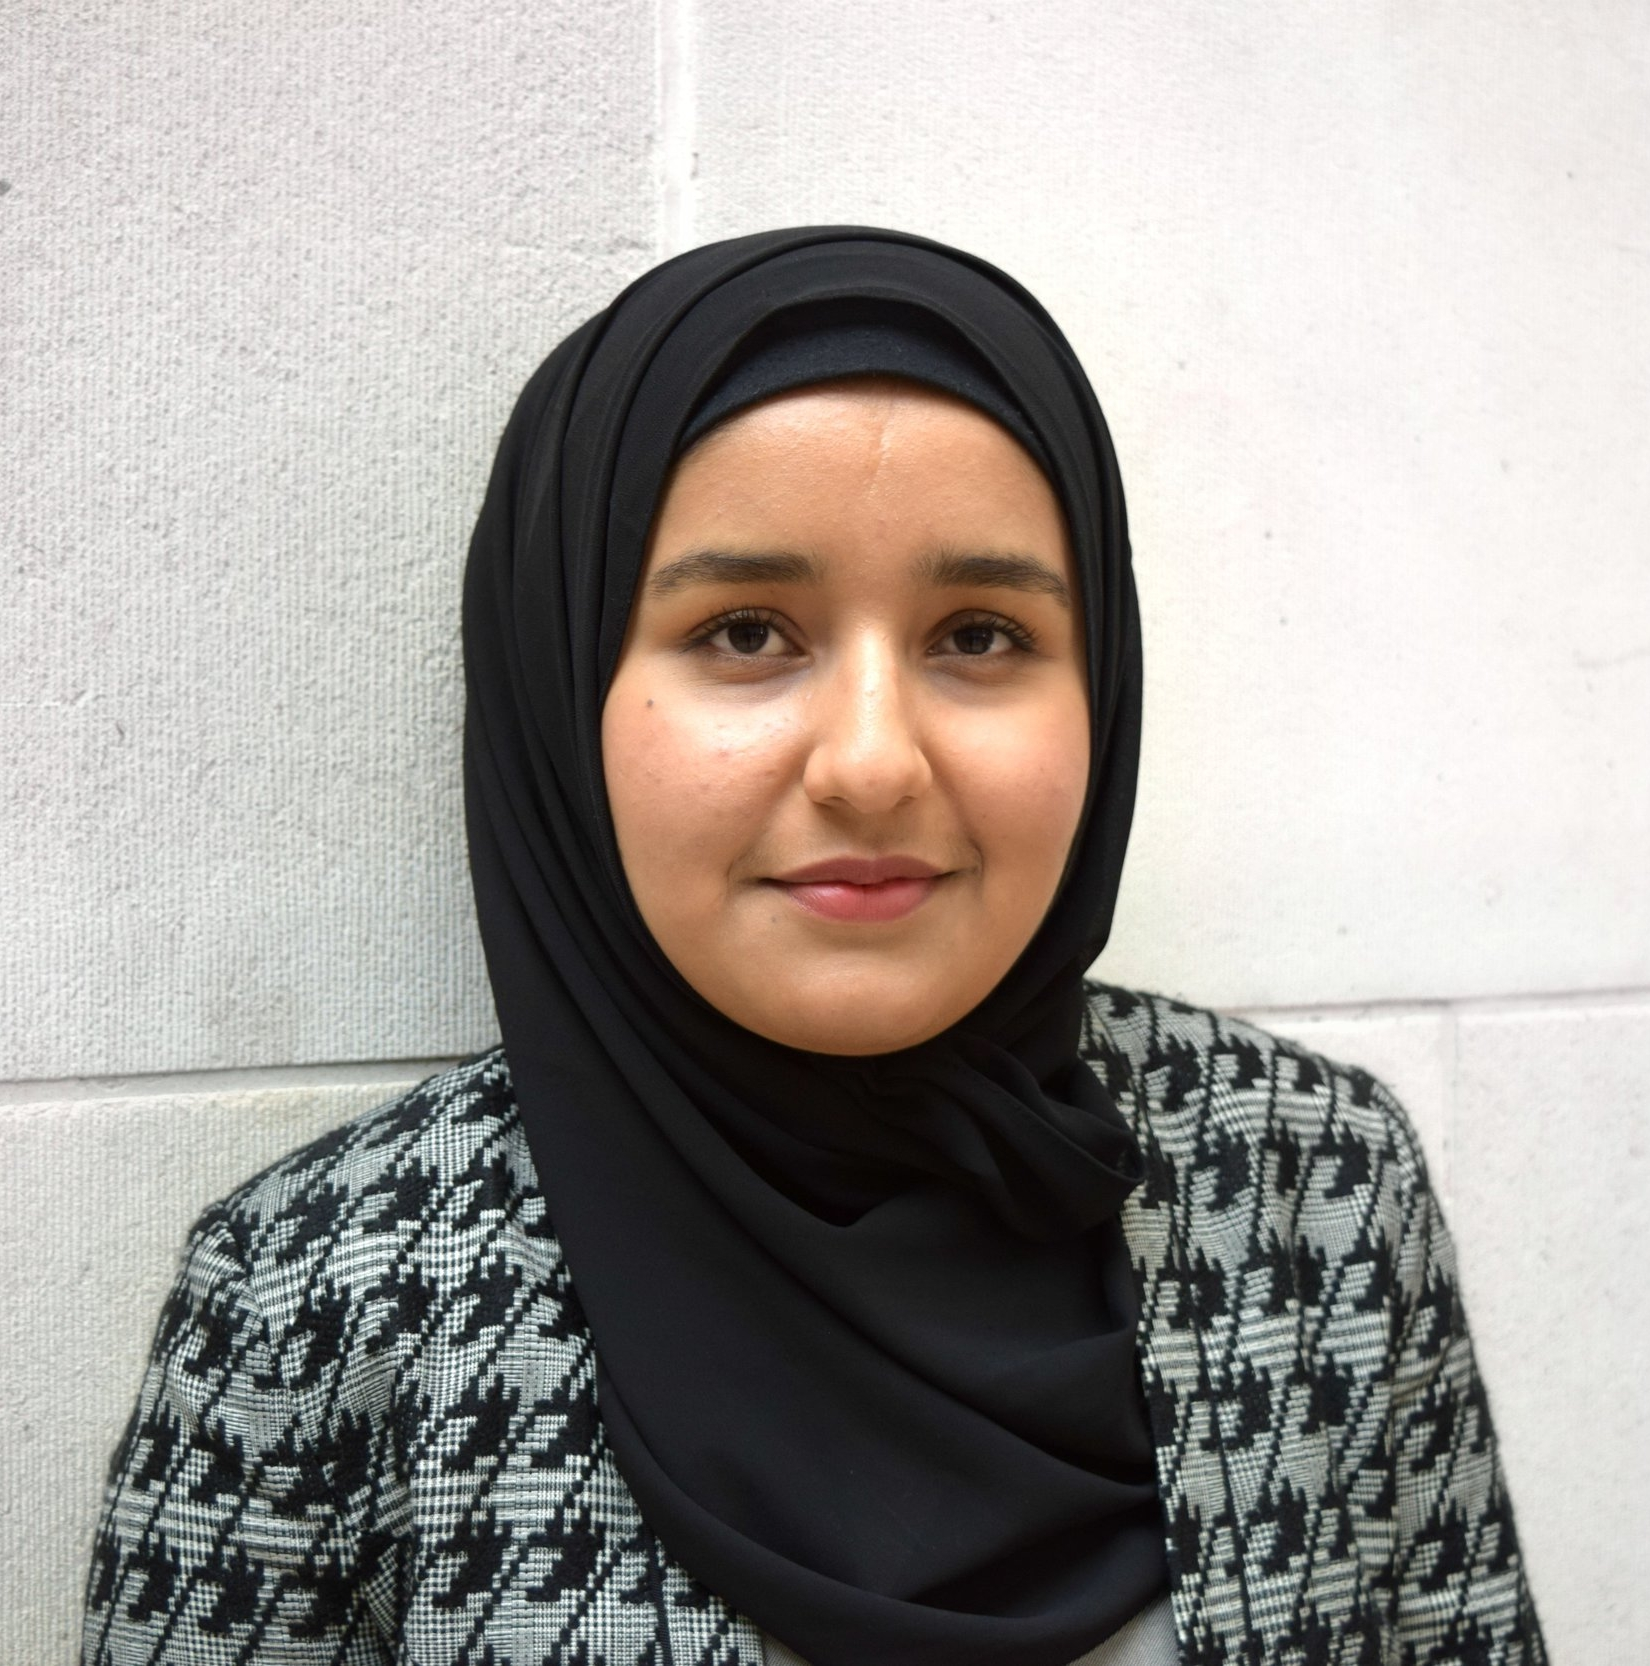 COMPETITION DIRECTOR - Negina Maihanwal - I am an LLB Law finalist student at SOAS where I currently serve the as the Competition Director of the SOAS Law Society for the 2018/2019 academic year. As a part of my role, I cooperate with numerous organisations, including law firms, to arrange competitions, and I work closely with the Law Society to prepare and engage students in our programmes. Being of Afghan nationality and having later spent three years in Egypt, where I have obtained a multi-faceted understanding of different cultures, I have grown an admiration for the uniqueness of culture and the susbsequent pool of talent that they have to offer. For this reason, I feel extremely lucky to be able to cultivate such a wide variety of talents by organising competitions and creating opportunities for students to showcase their skills. I thrive to cater both for law and non-law interests by approaching my role creatively to offer competition as diverse as the SOAS community itself. As a part of my manifesto, I have propounded the idea of 'law in context', whereby I seek to secure competitions that seek to reflect the law in practice. Through this, I aim to illuminate that law is not restricted to statutes and cases, but that it is an entity that lives and grows in society and must be approached as so. In this way, I aim to grant our student body the best chance of understanding the law and thus excelling in careers relating to it. As a Competition Director, my goal is not merely to organise competition, but make competition the medium through which our students can find their voice and become tomorrow's leaders.I look forward to working with the rest of the committee this year to provide a platform for excellence.